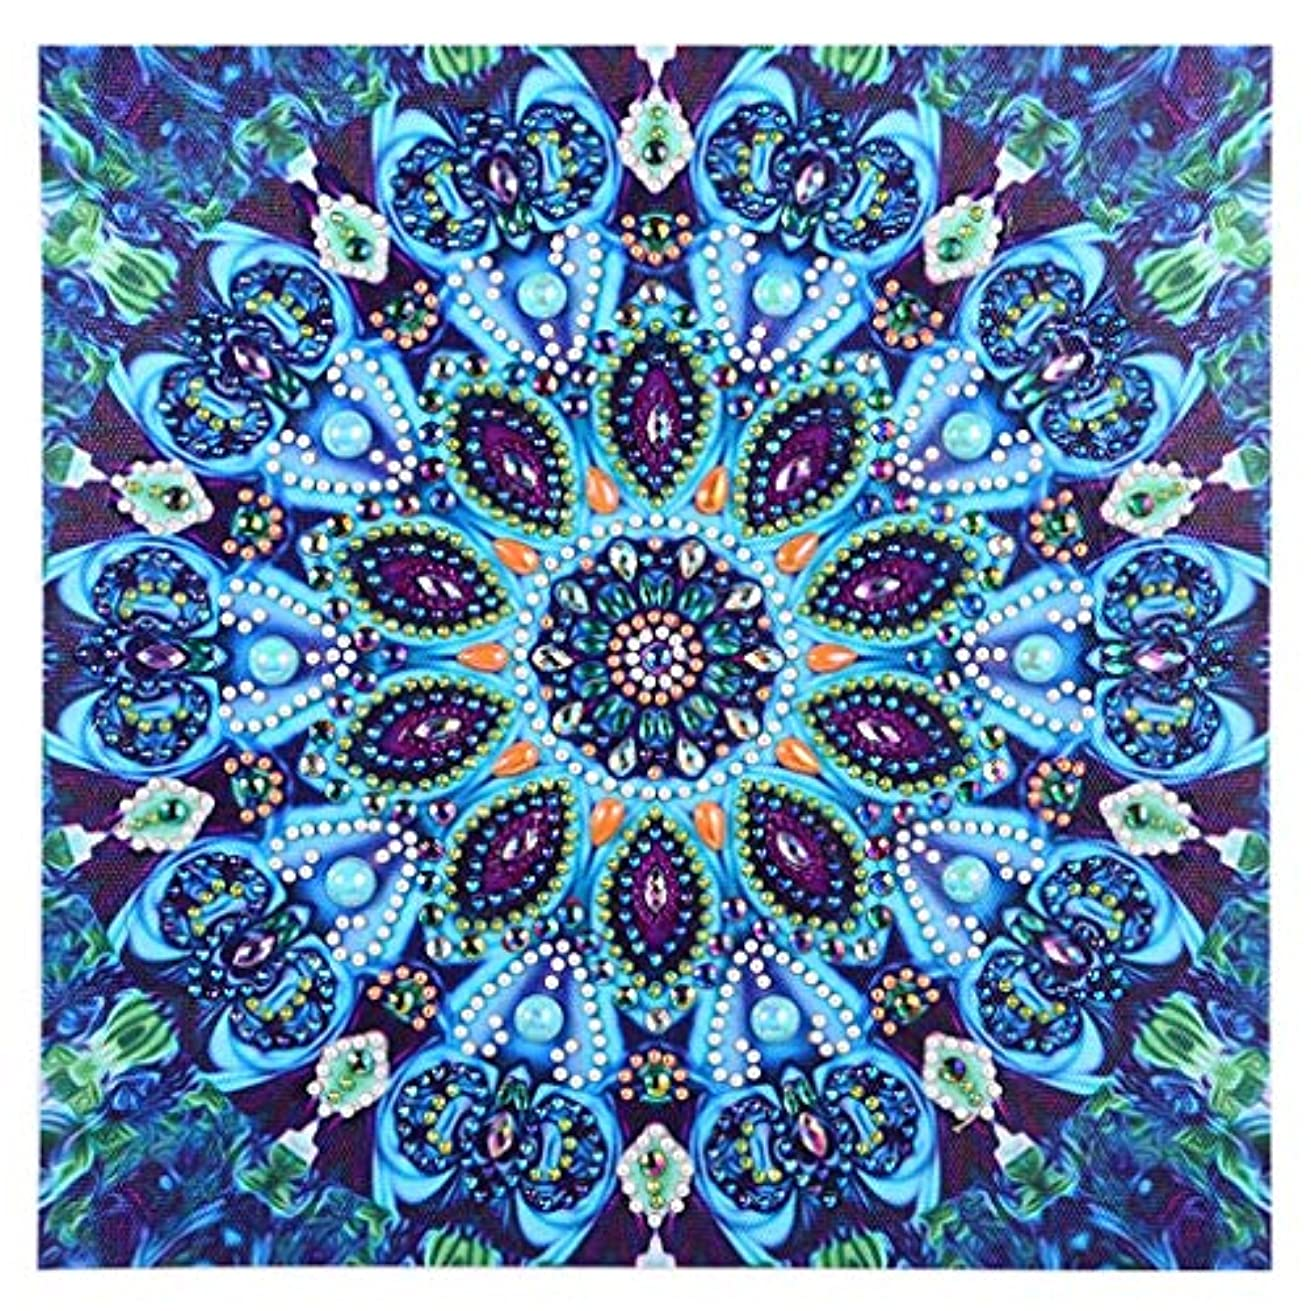 DIY 5D Diamond Painting by Number Kits Embroidery Painting for Wall Decor (Special Shaped Diamond,Mandala 5)